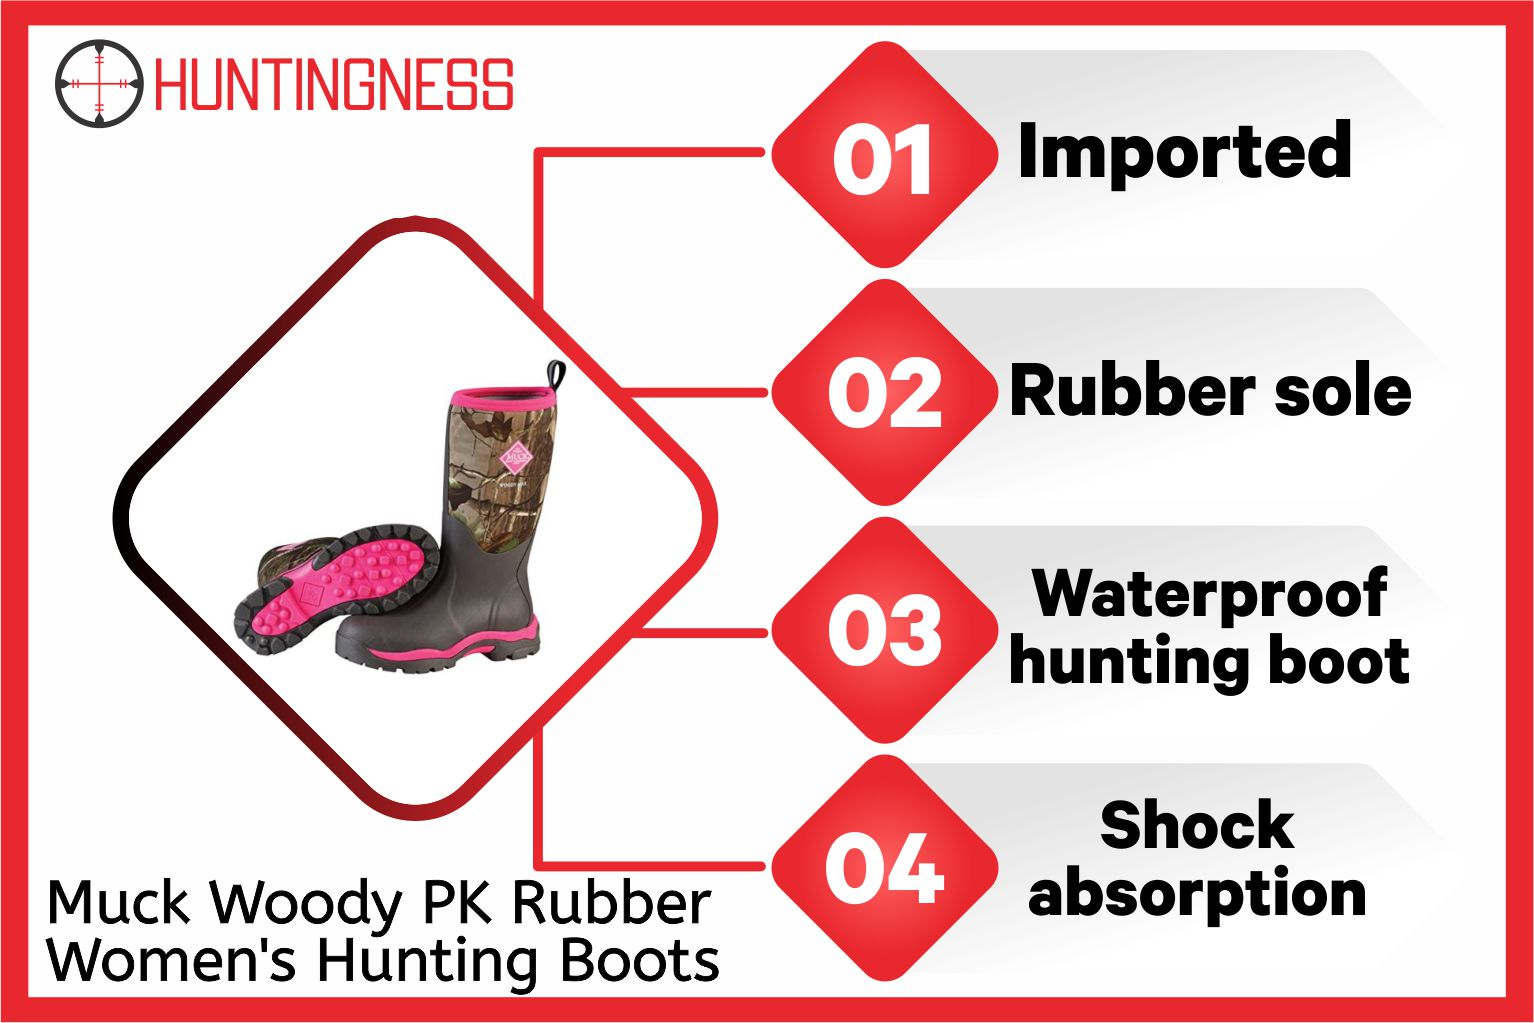 Muck Woody PK Rubber Women's Hunting Boots infographic